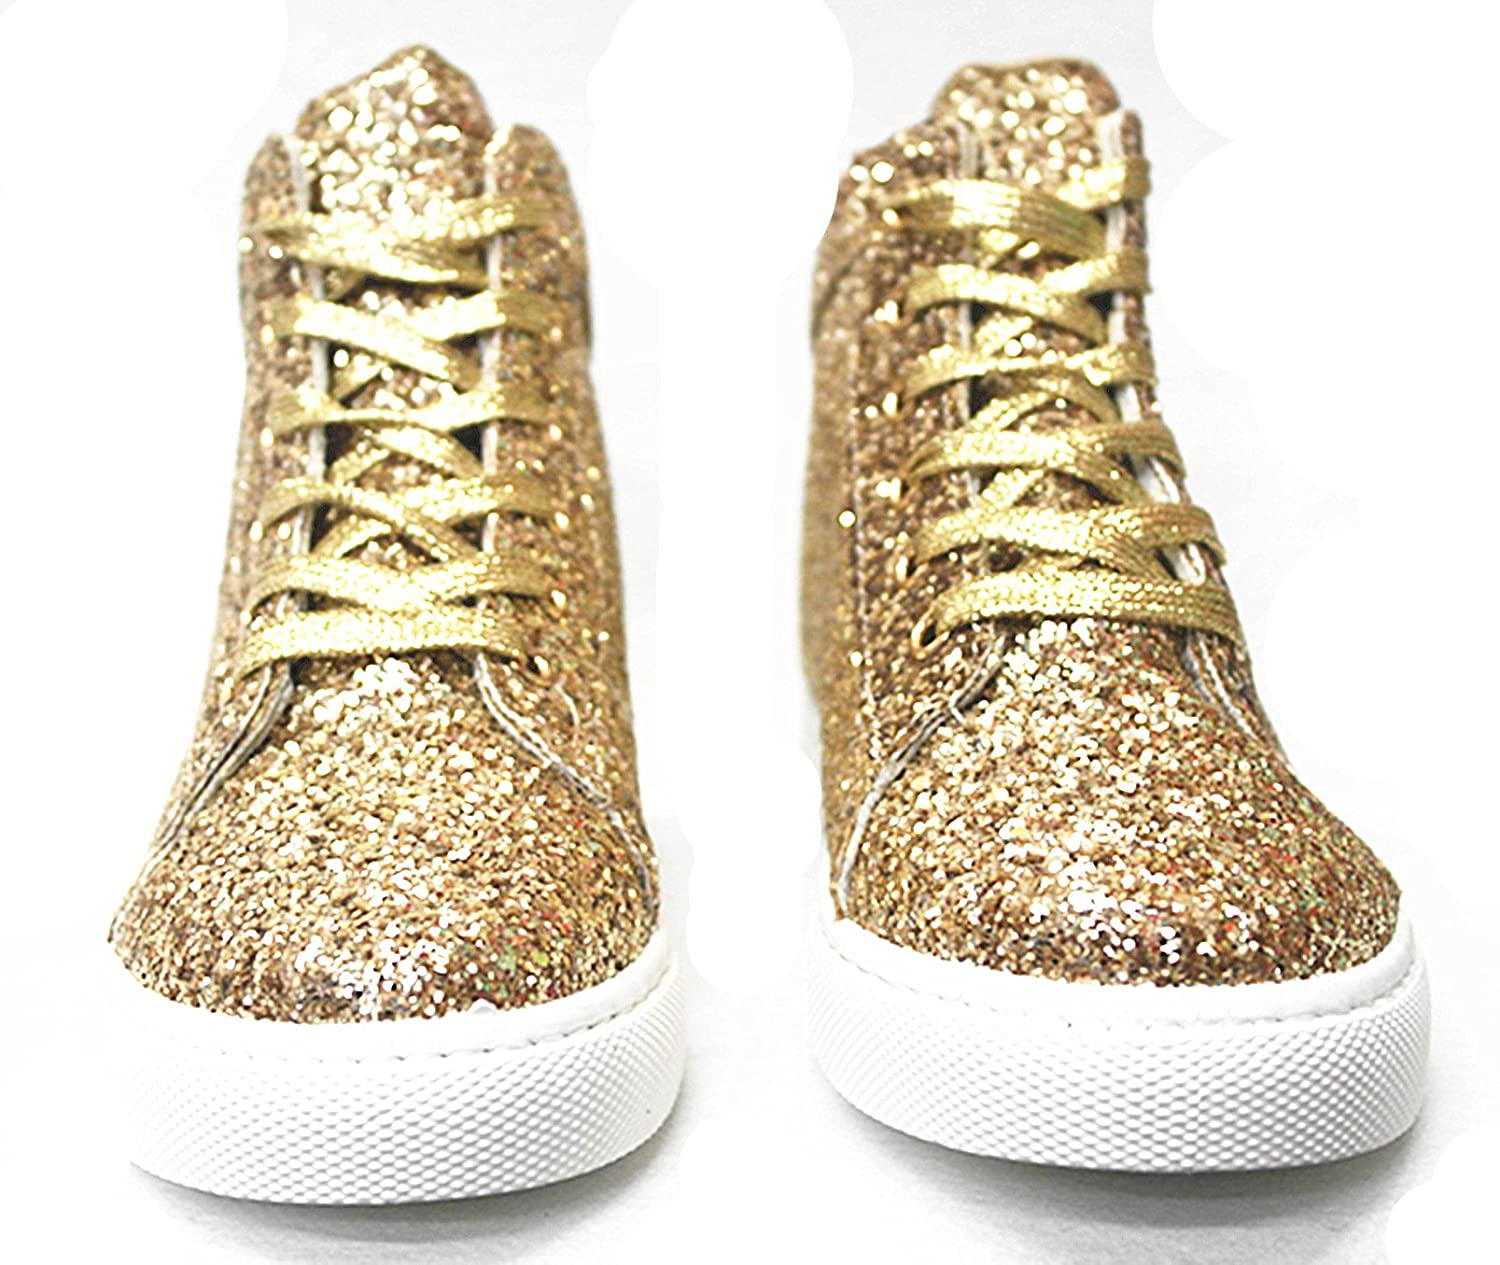 SF Forever Link Remy-18 Women's Jogger Sneaker-Lightweight Glitter Quilted Lace up Shoes New B07BJCGMGR 6 B(M) US|Gold-27